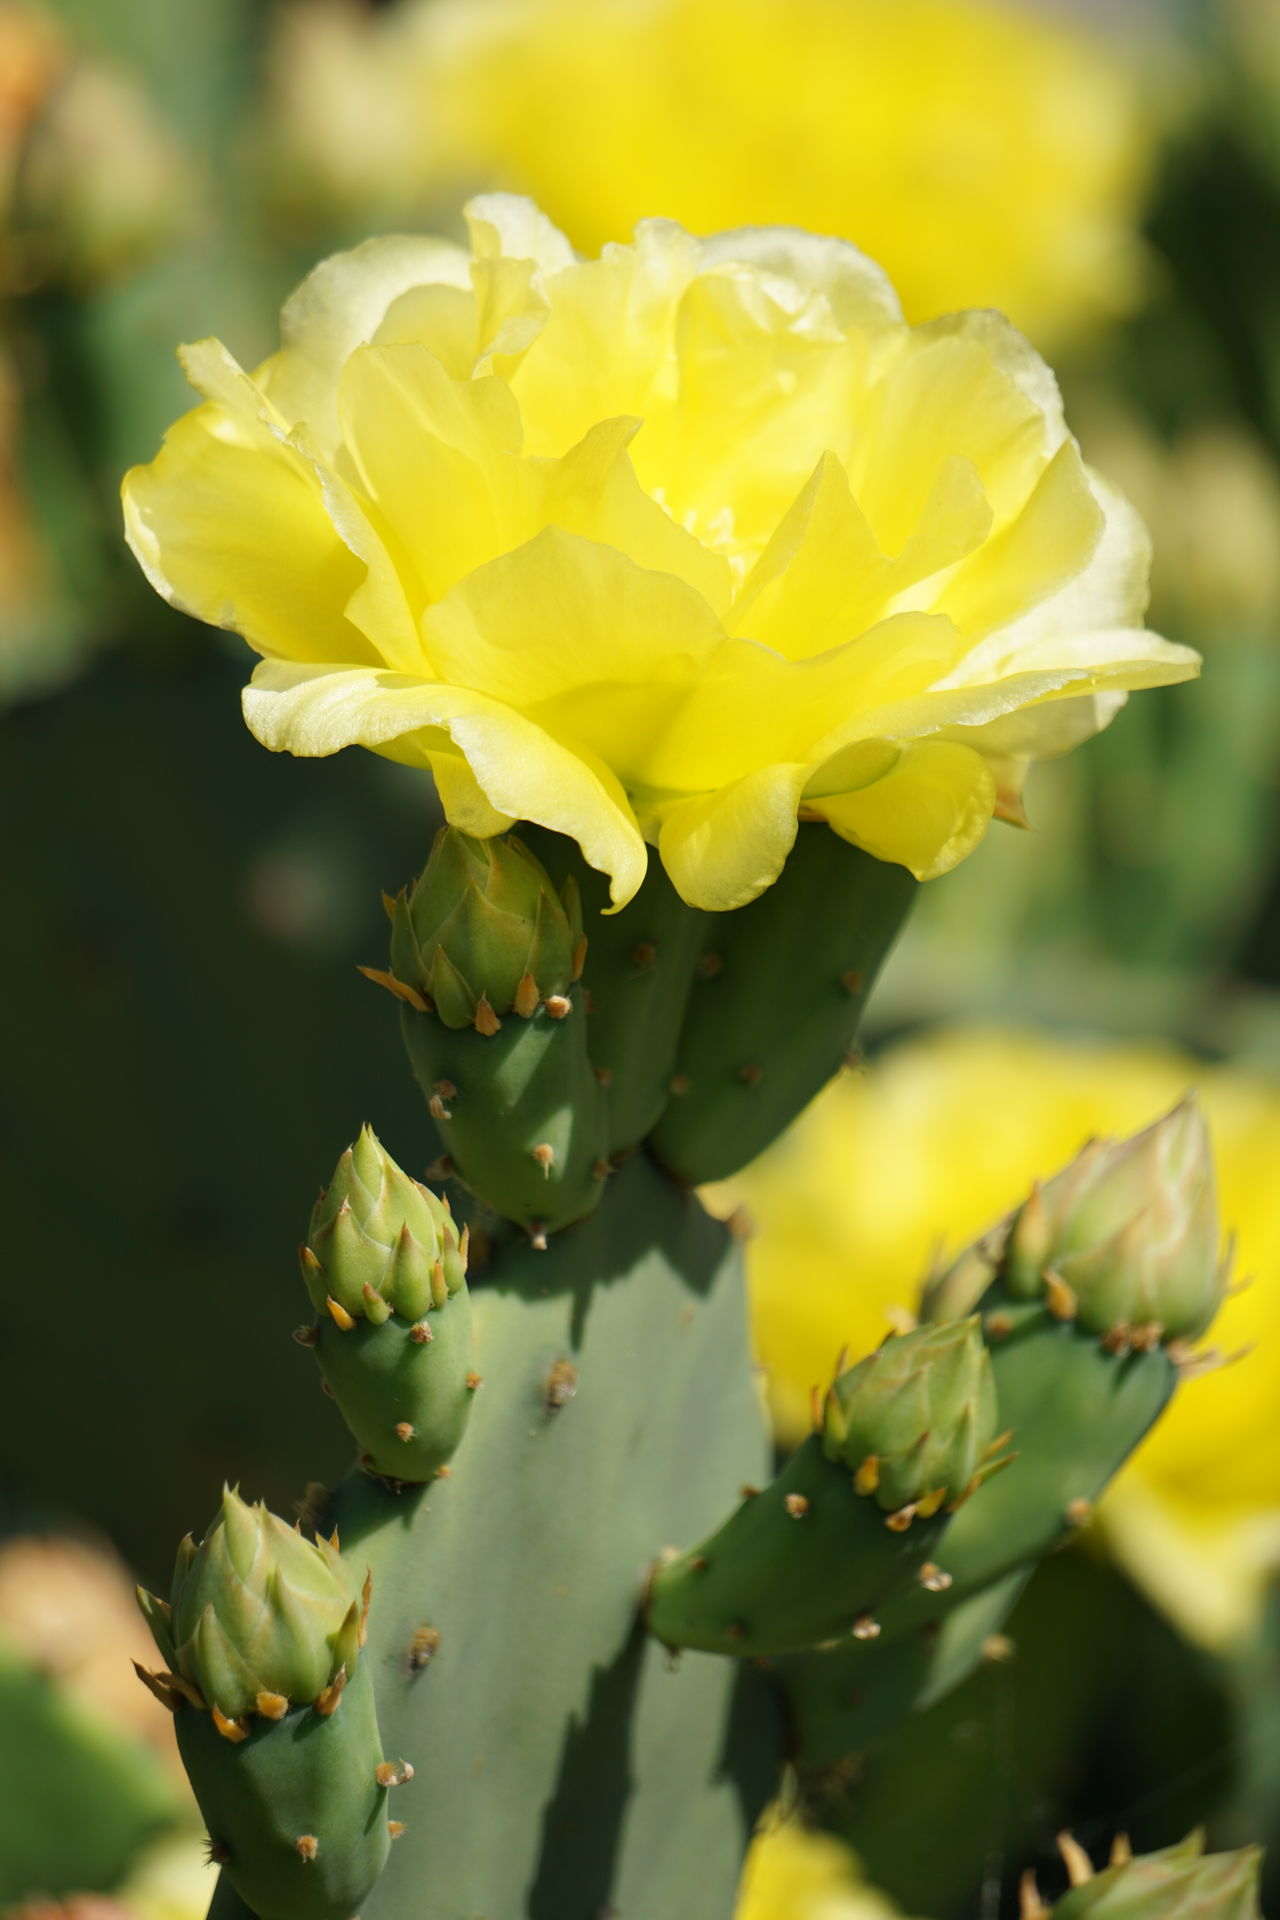 Flower Nature Plant Beauty In Nature Close-up Yellow Petal Fragility Outdoors Growth Focus On Foreground Freshness Uncultivated No People Wildflower Day Flower Head Prickly Pear Cactus Flowering Cactus Sunlit Beauty In Nature Yellow Cactus Flower